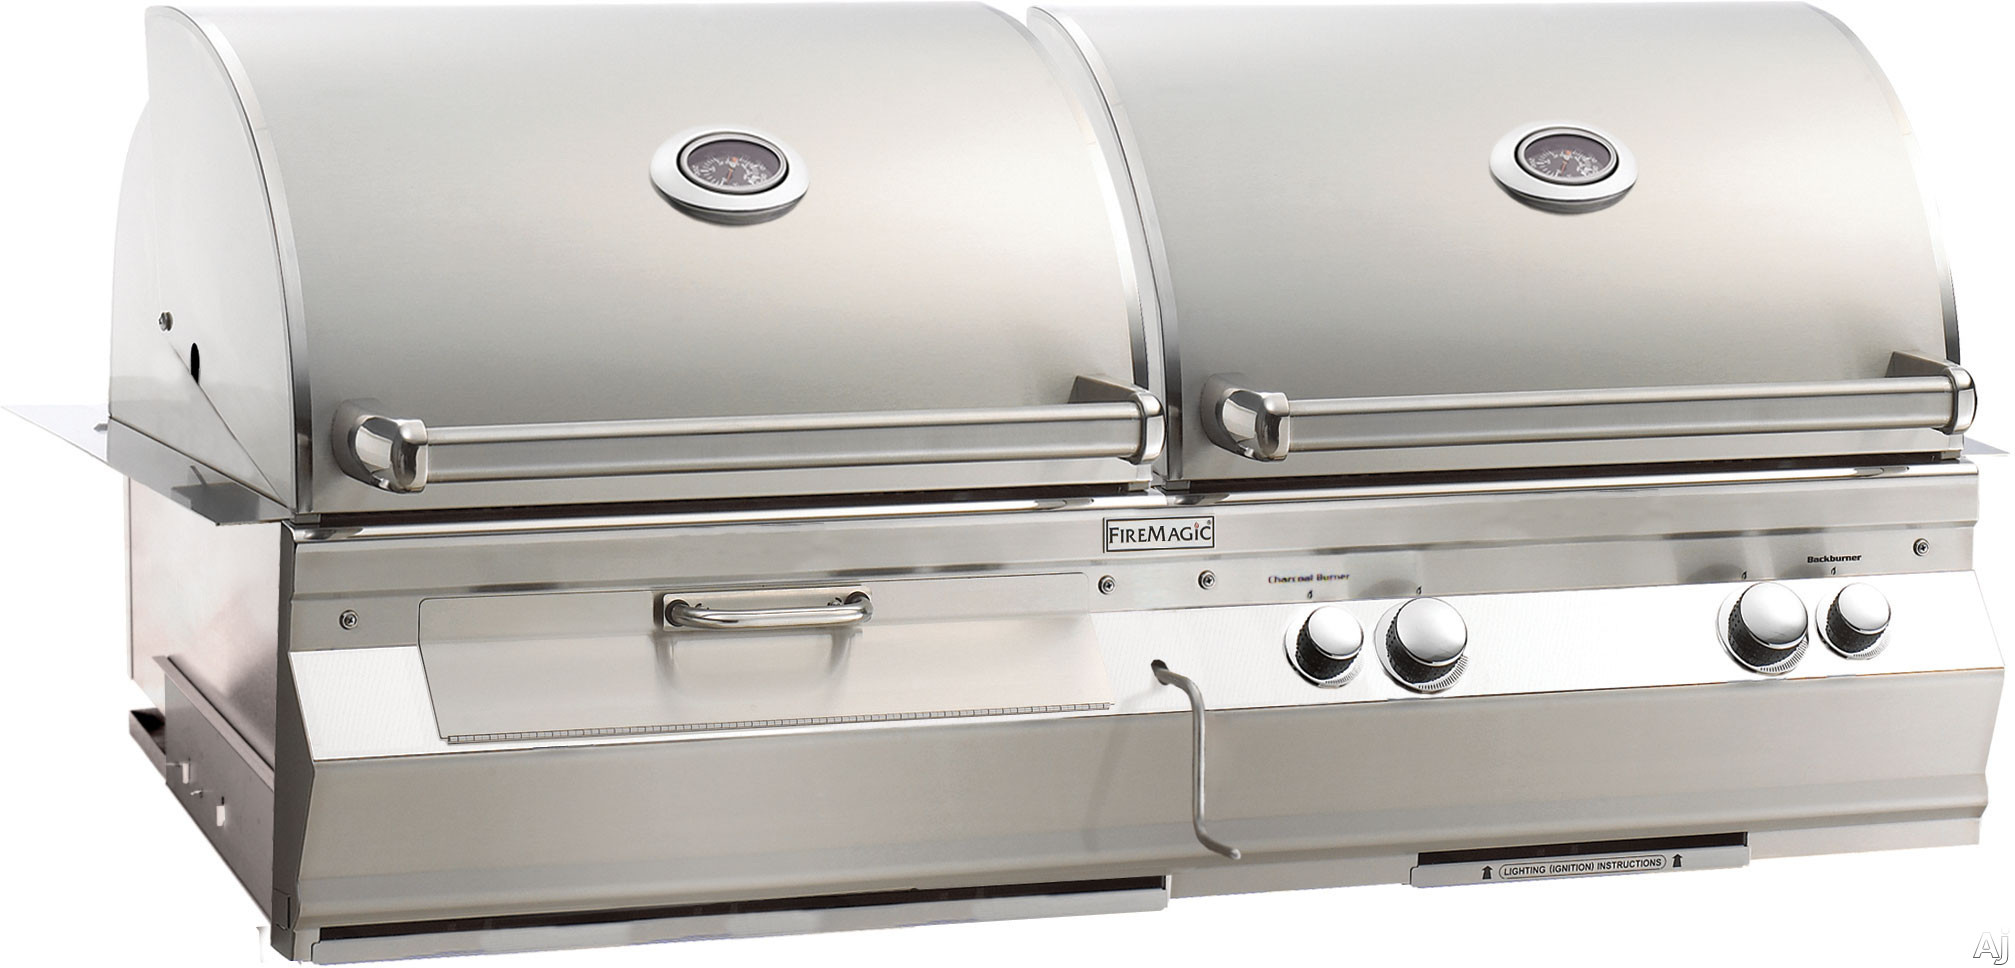 Fire Magic Aurora Collection A830I5E1PCB 46 Inch Built-in Gas and Charcoal Grills with 828 sq. in. Combined Cooking Area, 50,000 BTU Gas Grill, 26,000 BTU Charcoal Grill, 13,000 Backburner and Interio